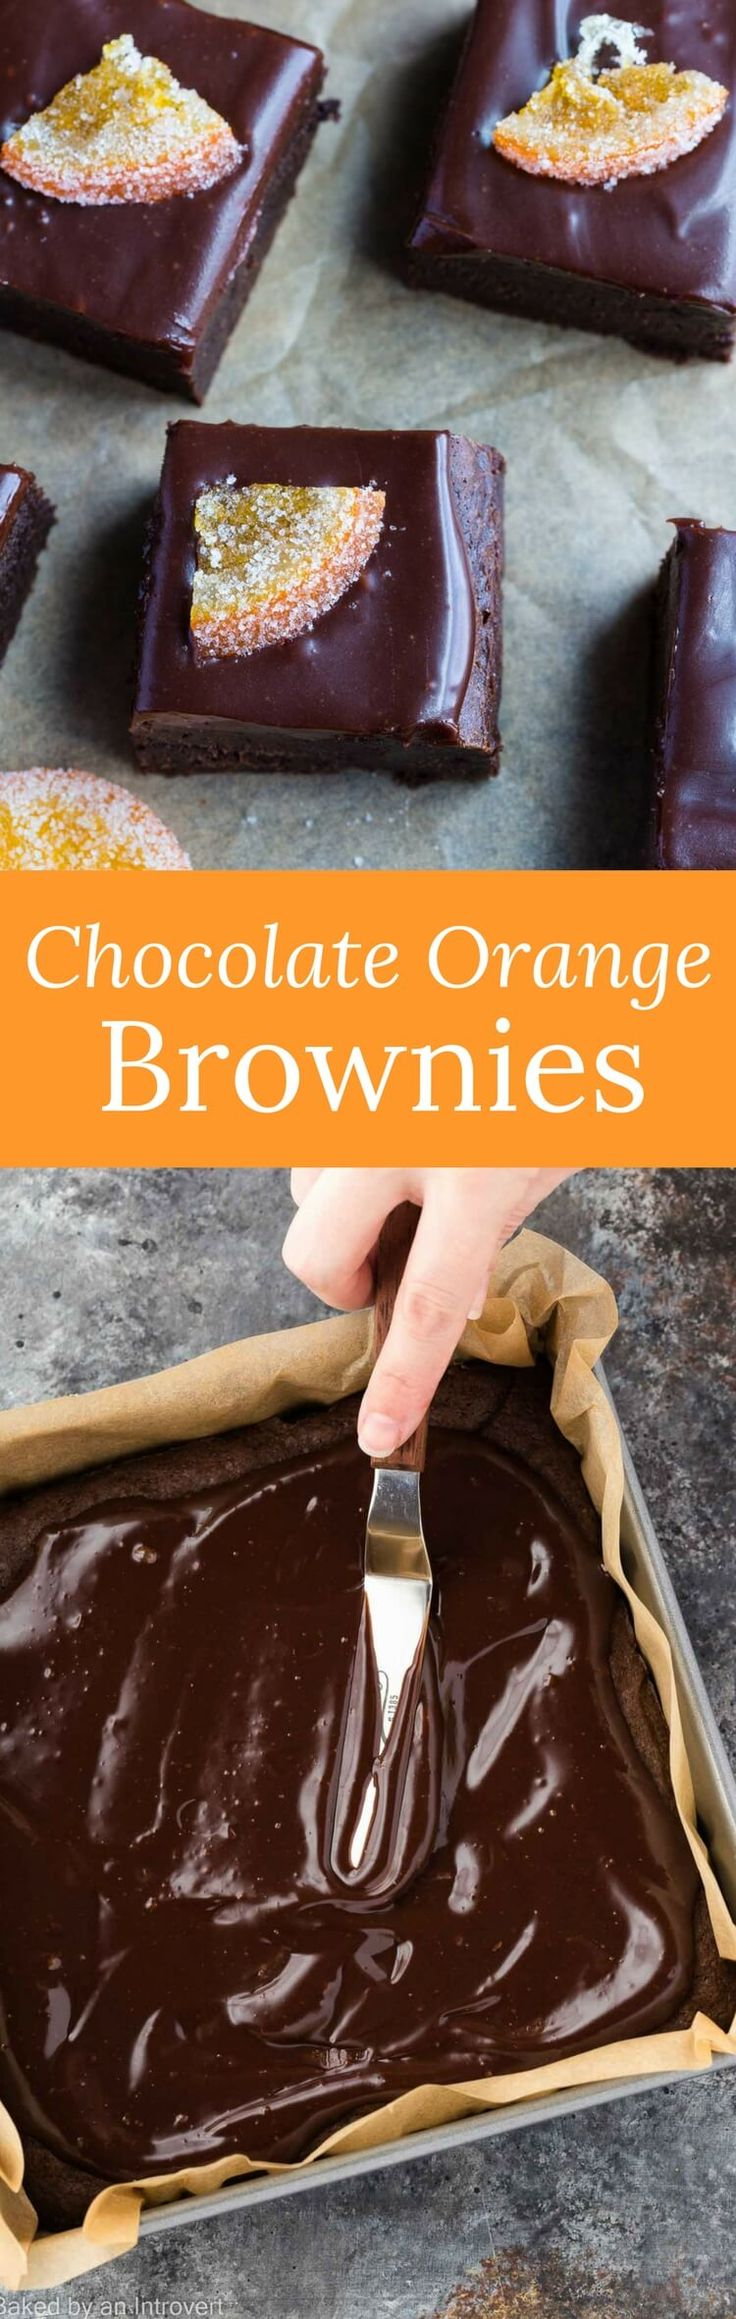 Whip up a batch of Chocolate Orange Brownies speckled with orange zest and topped with a luscious chocolate ganache and candied oranges.  via @introvertbaker